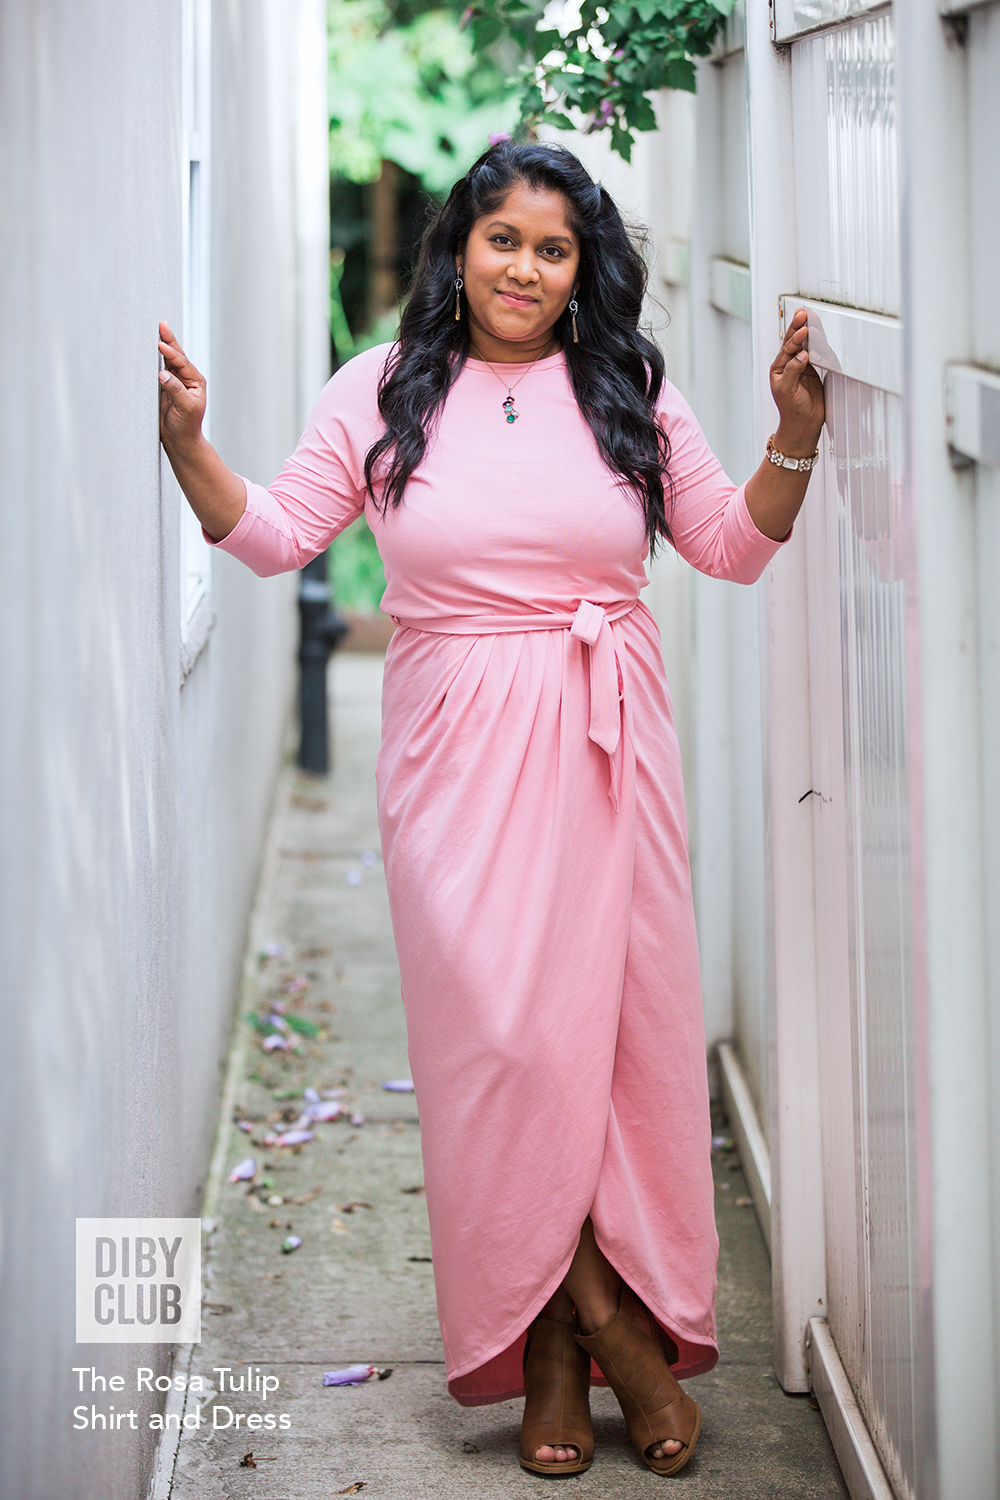 The Rosa Tulip Dress And Top Pdf Sewing Pattern Diby Club